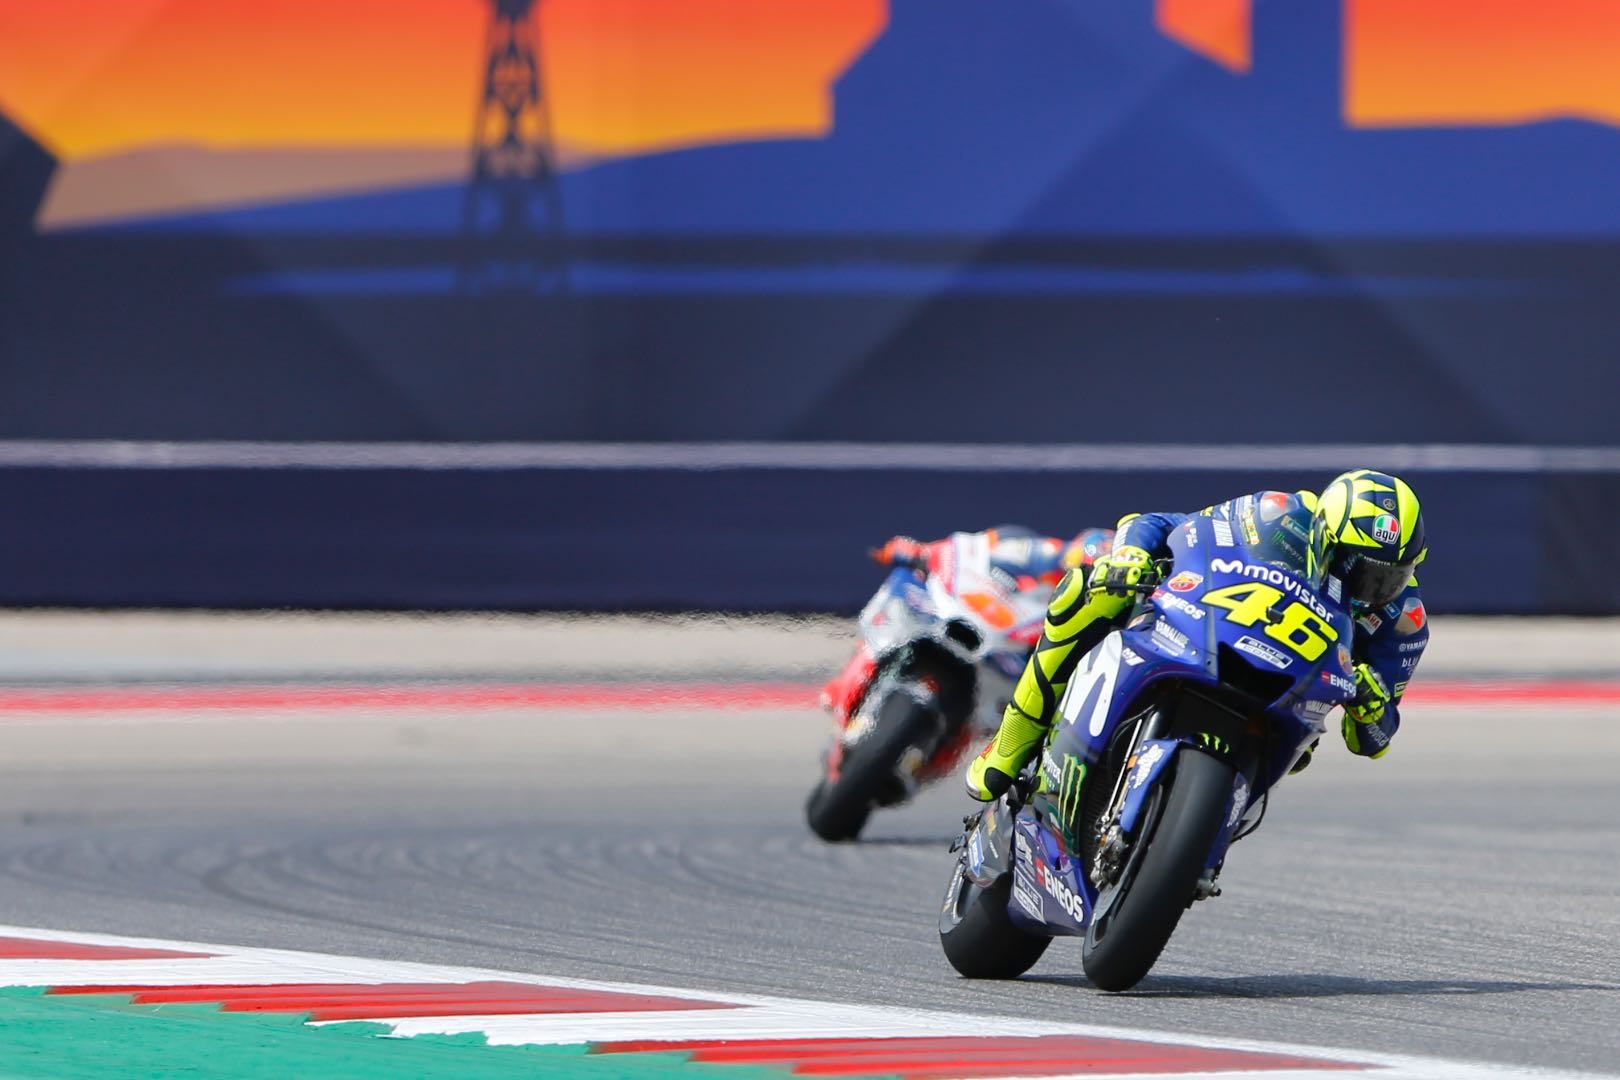 2018 Austin MotoGP Friday Results: Yamaha's Valentino Rossi